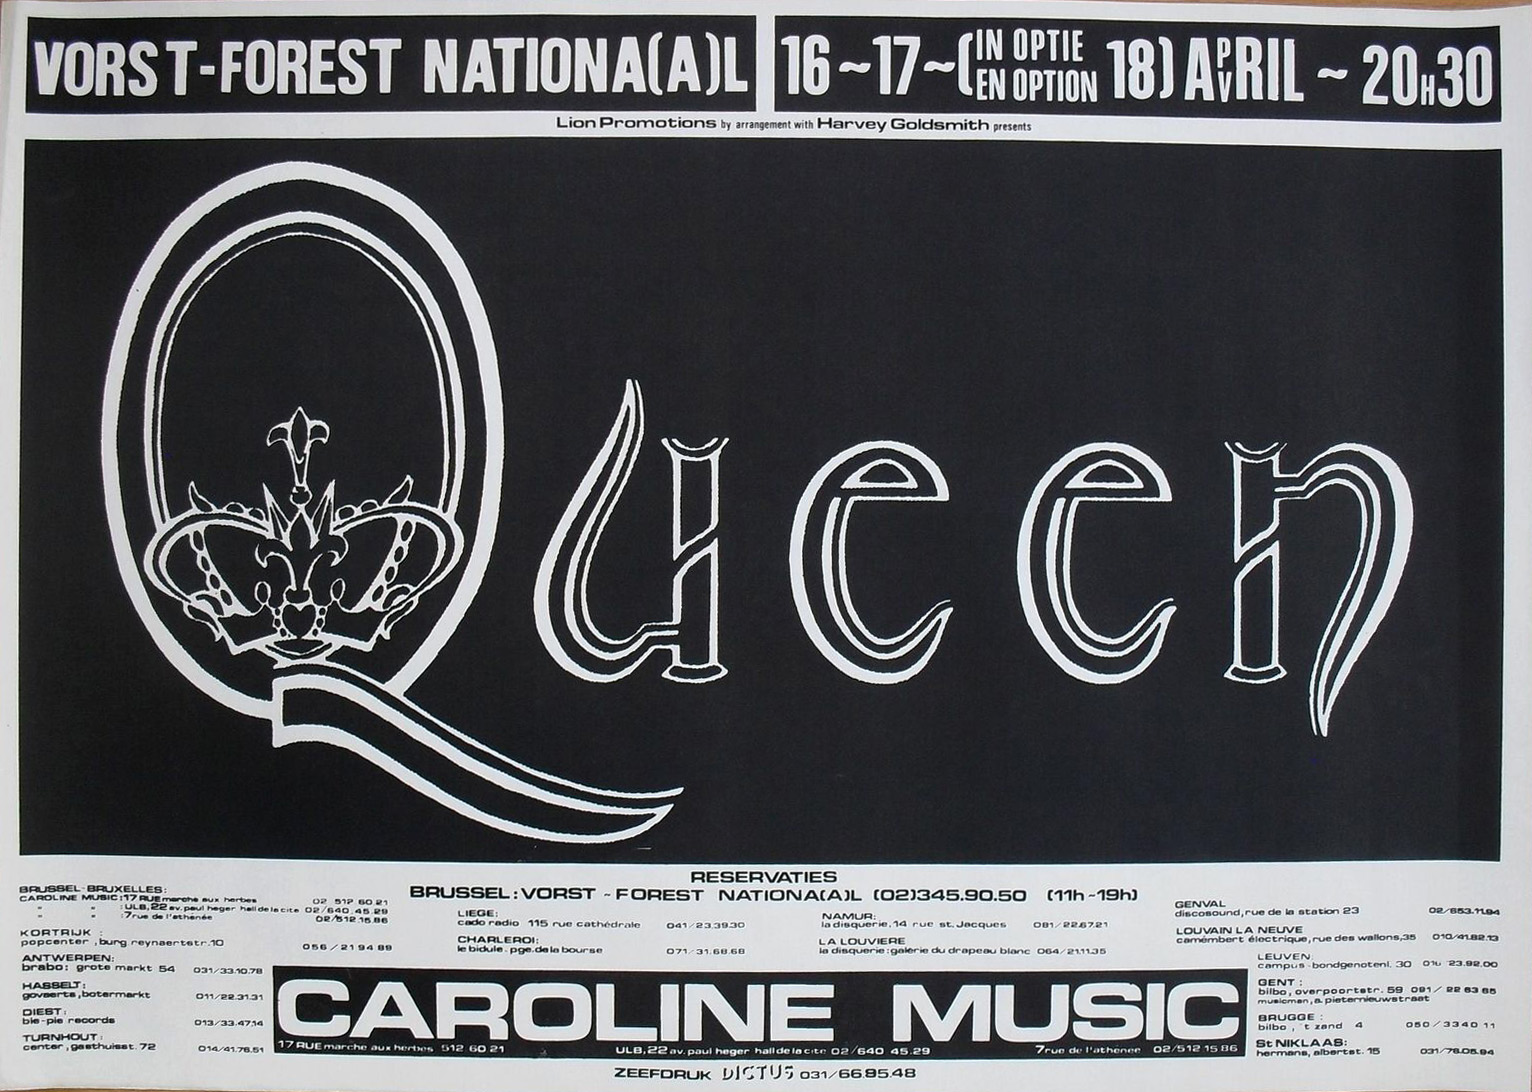 Queen in Brussels on 16.-17.04.1978